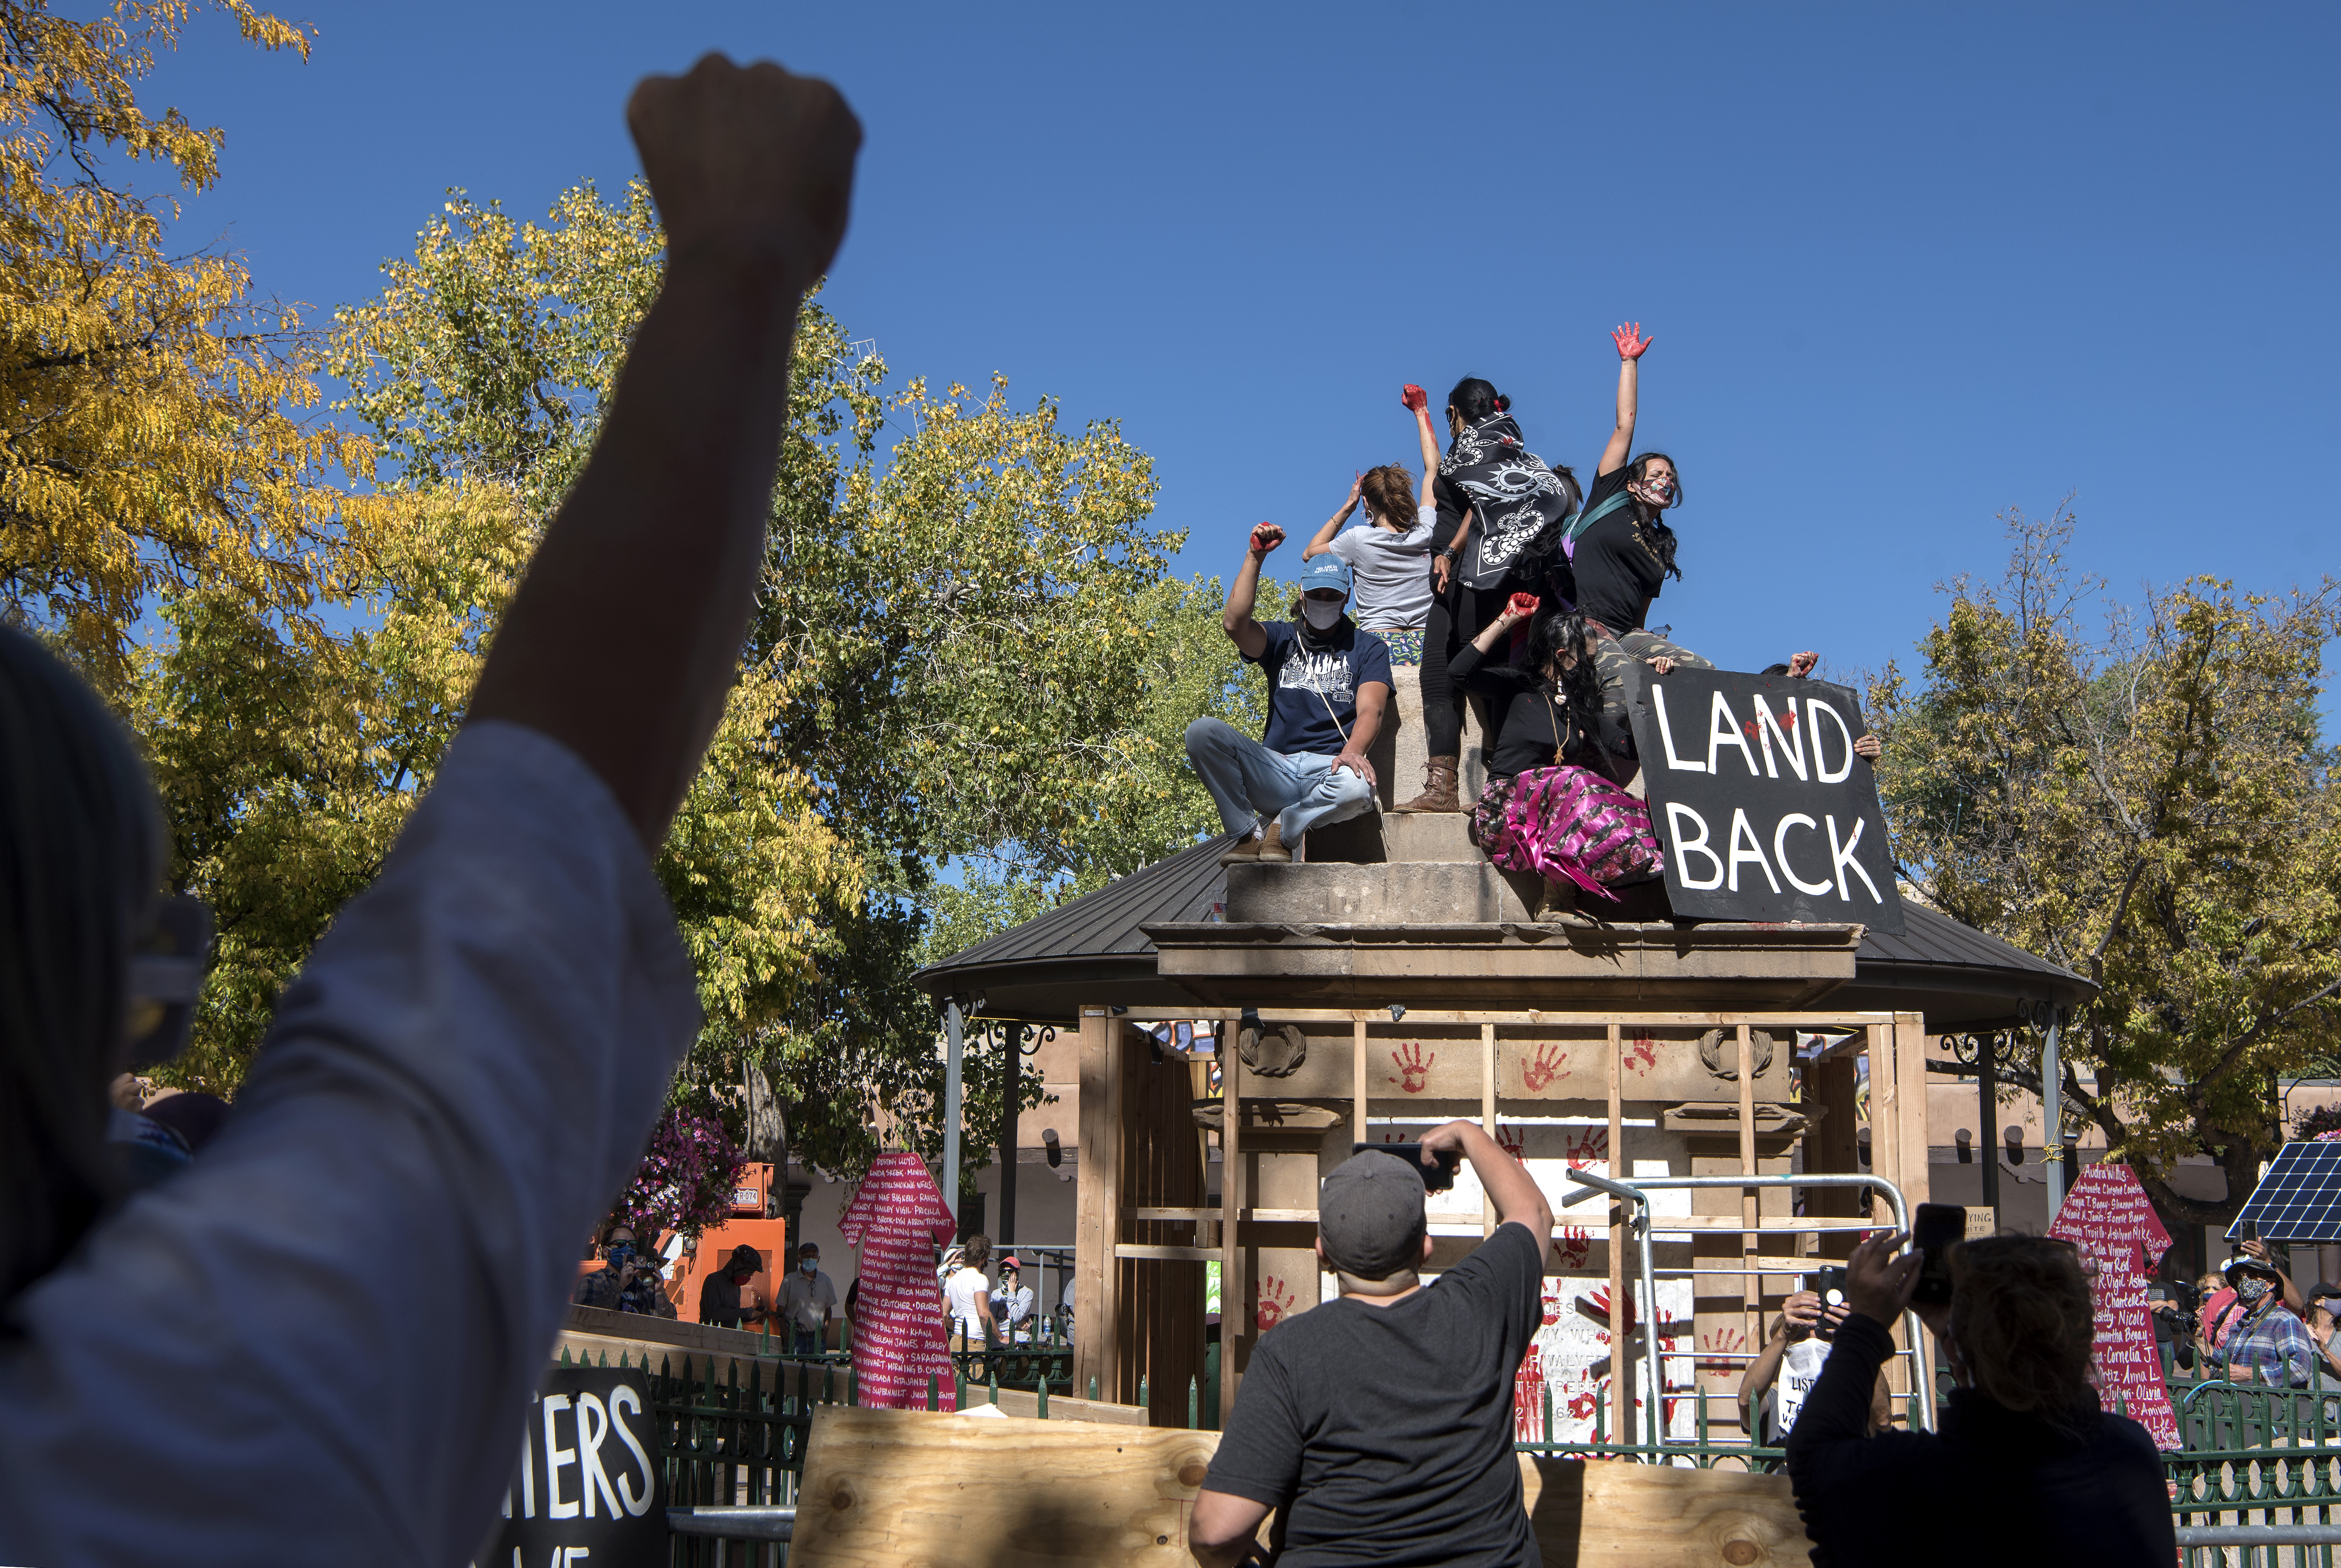 Protesters Take Over Sf Plaza Topple Obelisk Albuquerque Journal